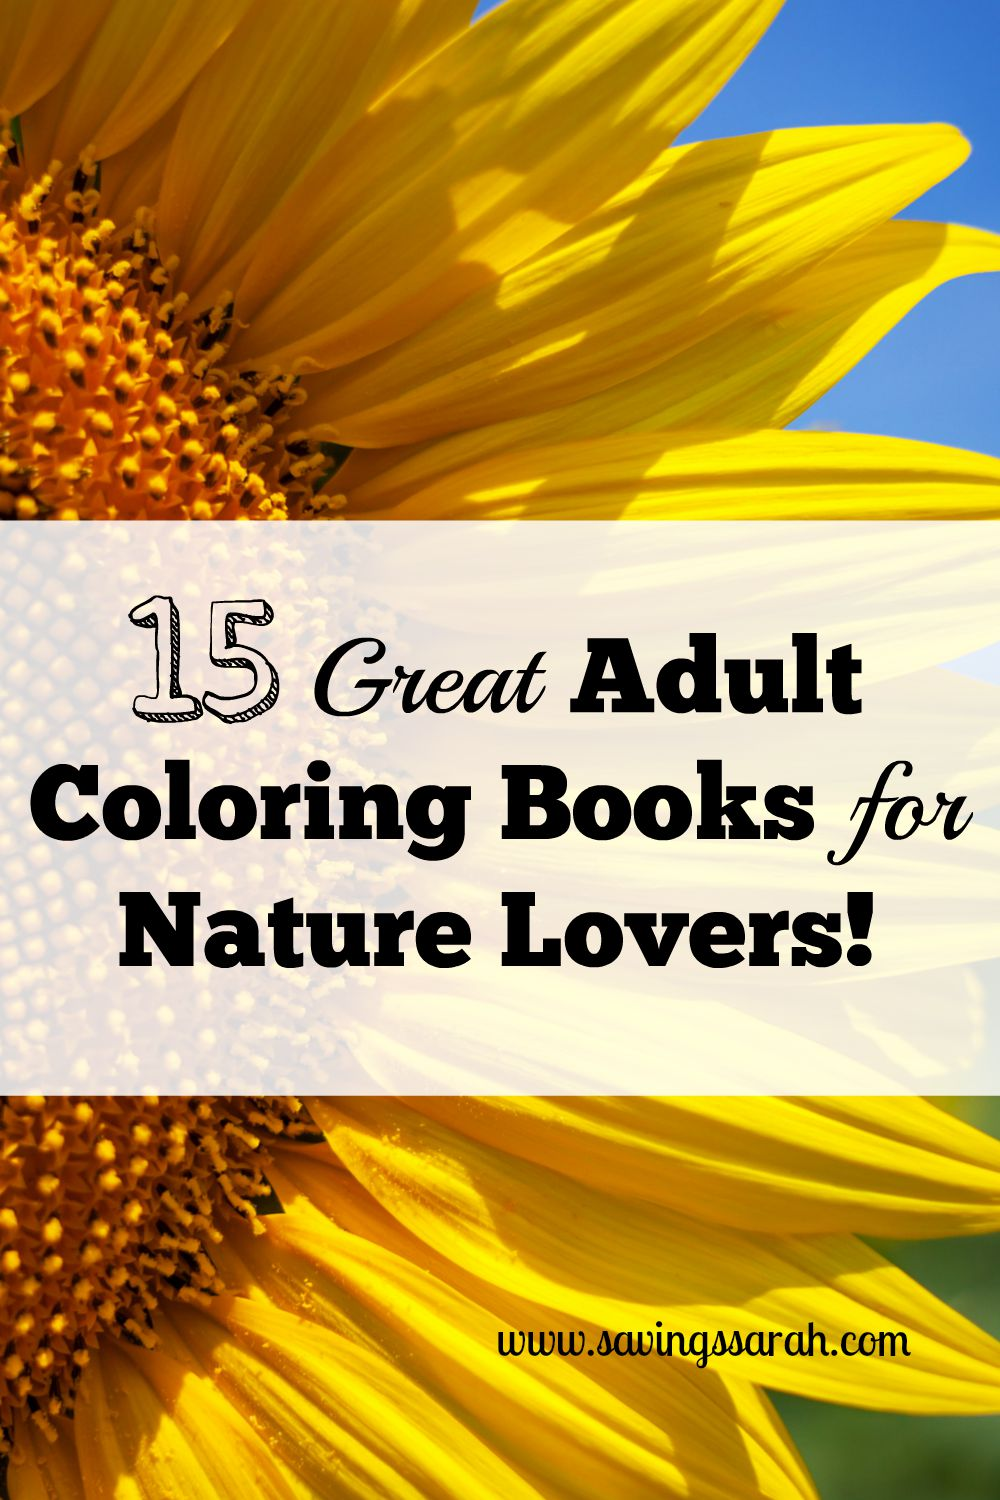 15 Great Adult Coloring Books for Nature Lovers Under $10